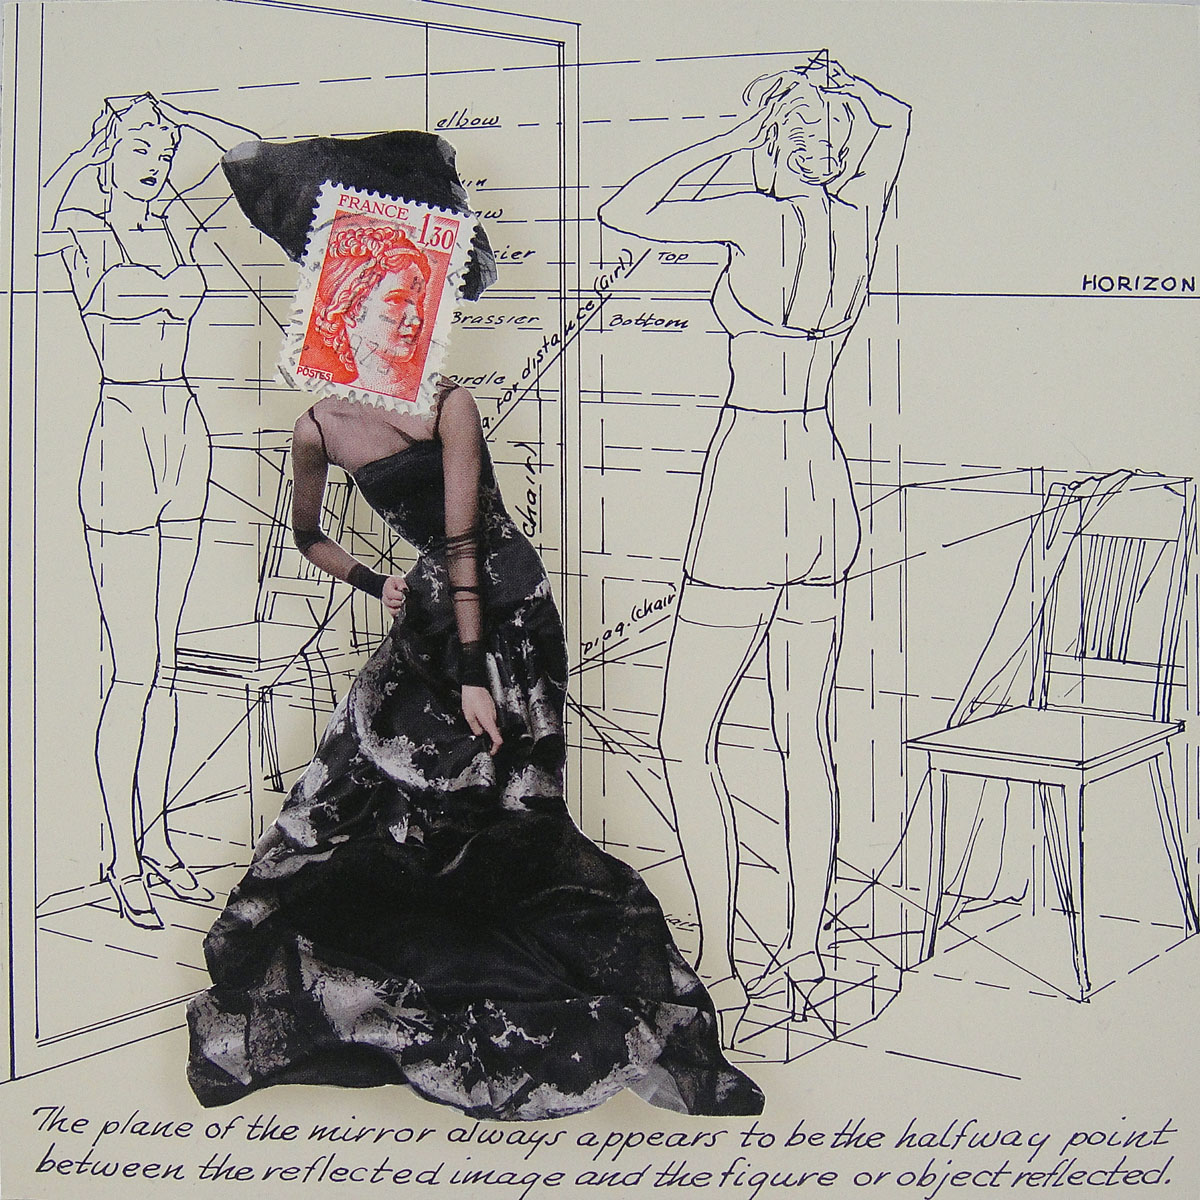 Collage made from postage stamps, magazine clippings and a page from a vintage how to drawing book: Reflection (2015) 6x6